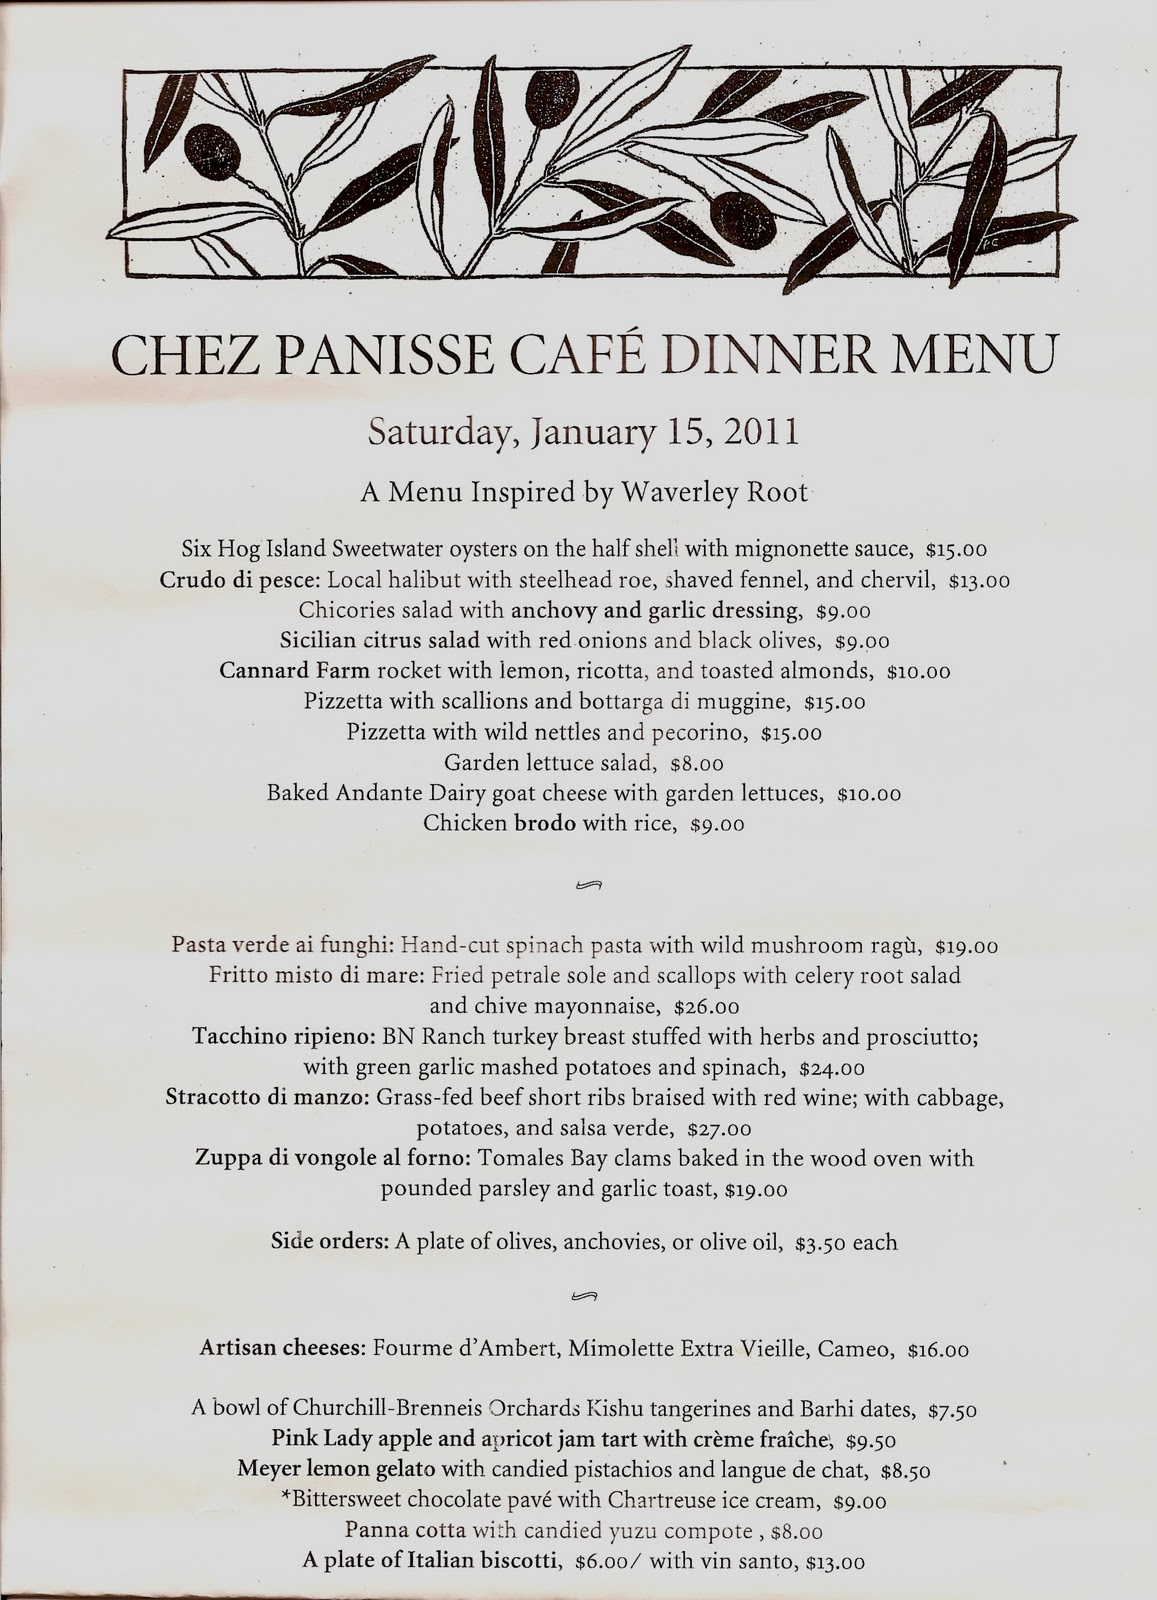 Dining at Chez Panisse | Frieda's Inc. – The Specialty Produce Company